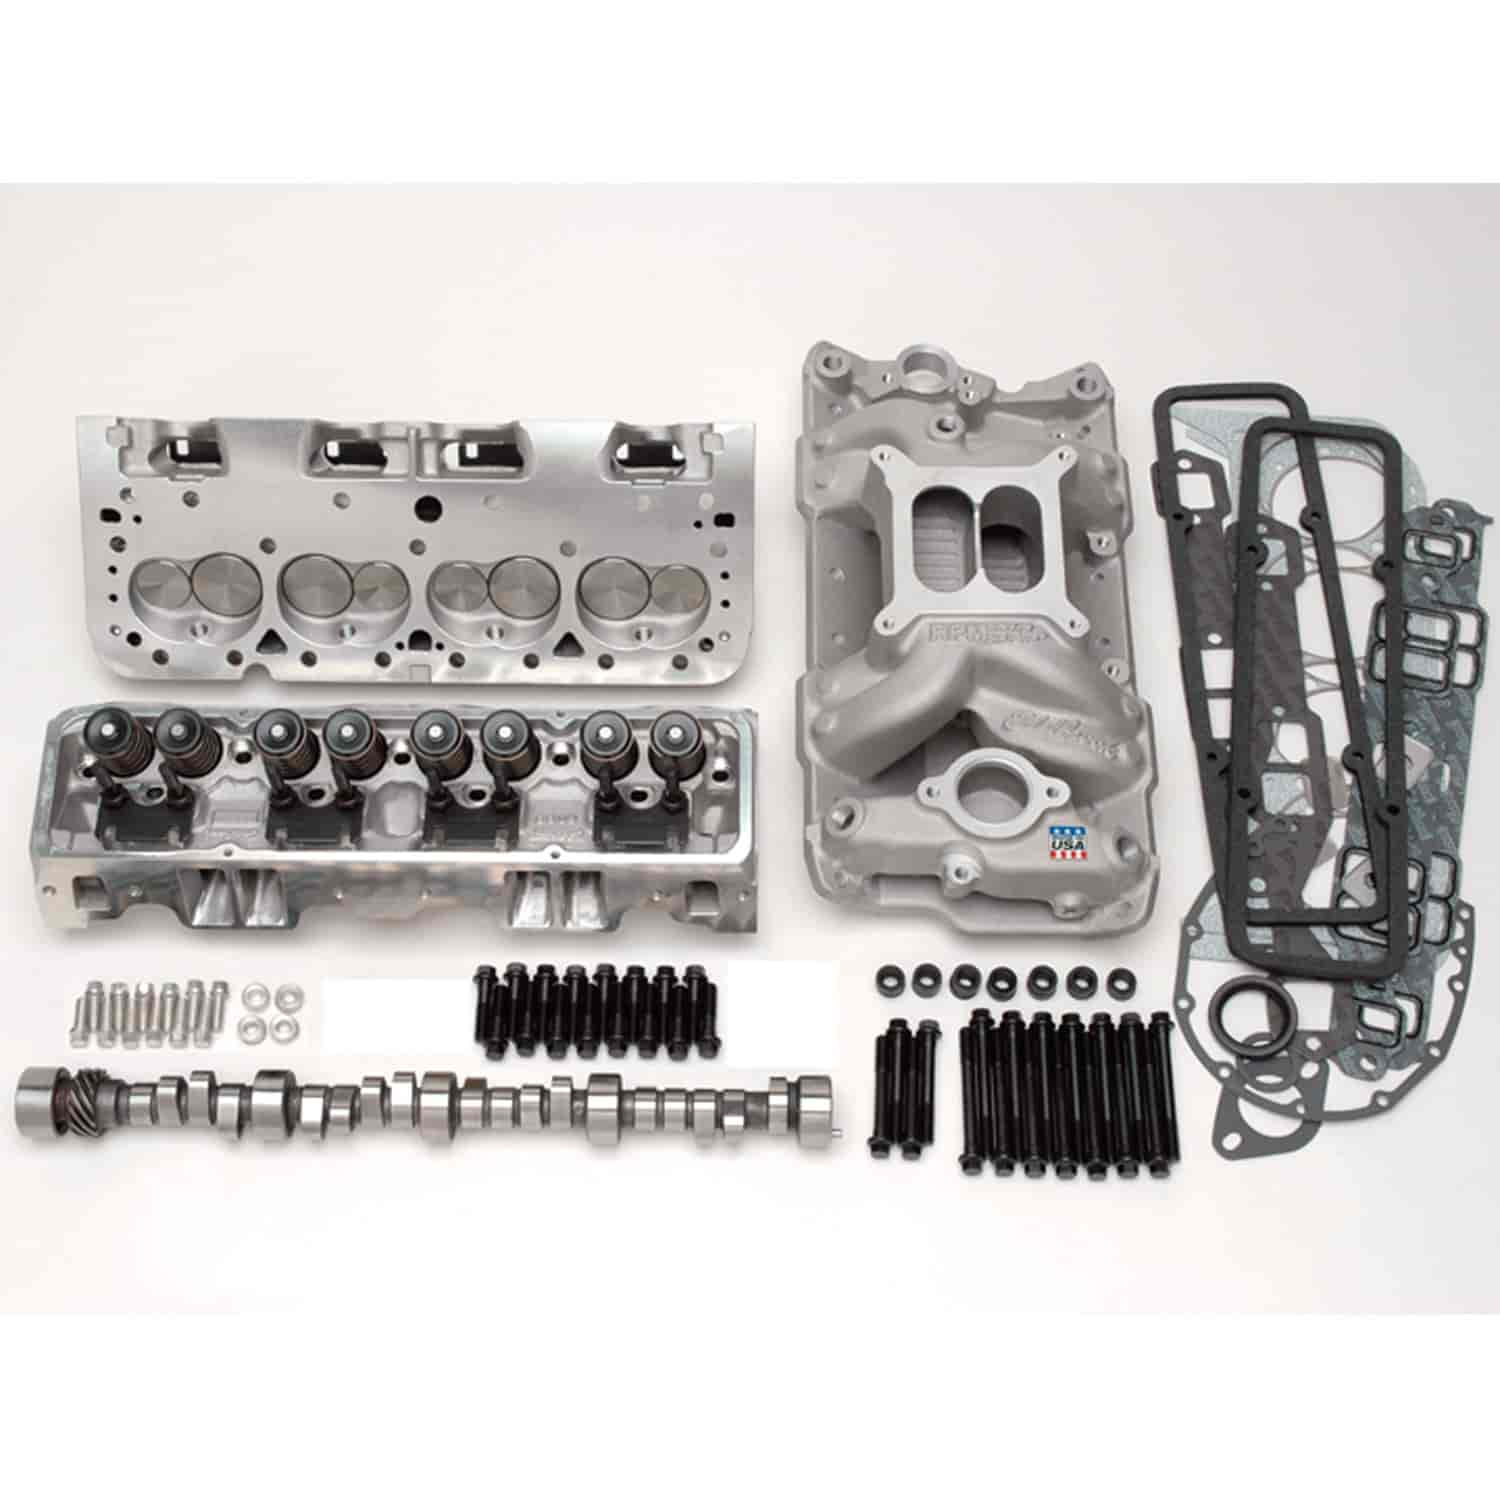 Edelbrock 2097 - Edelbrock Power Package Top End Kits